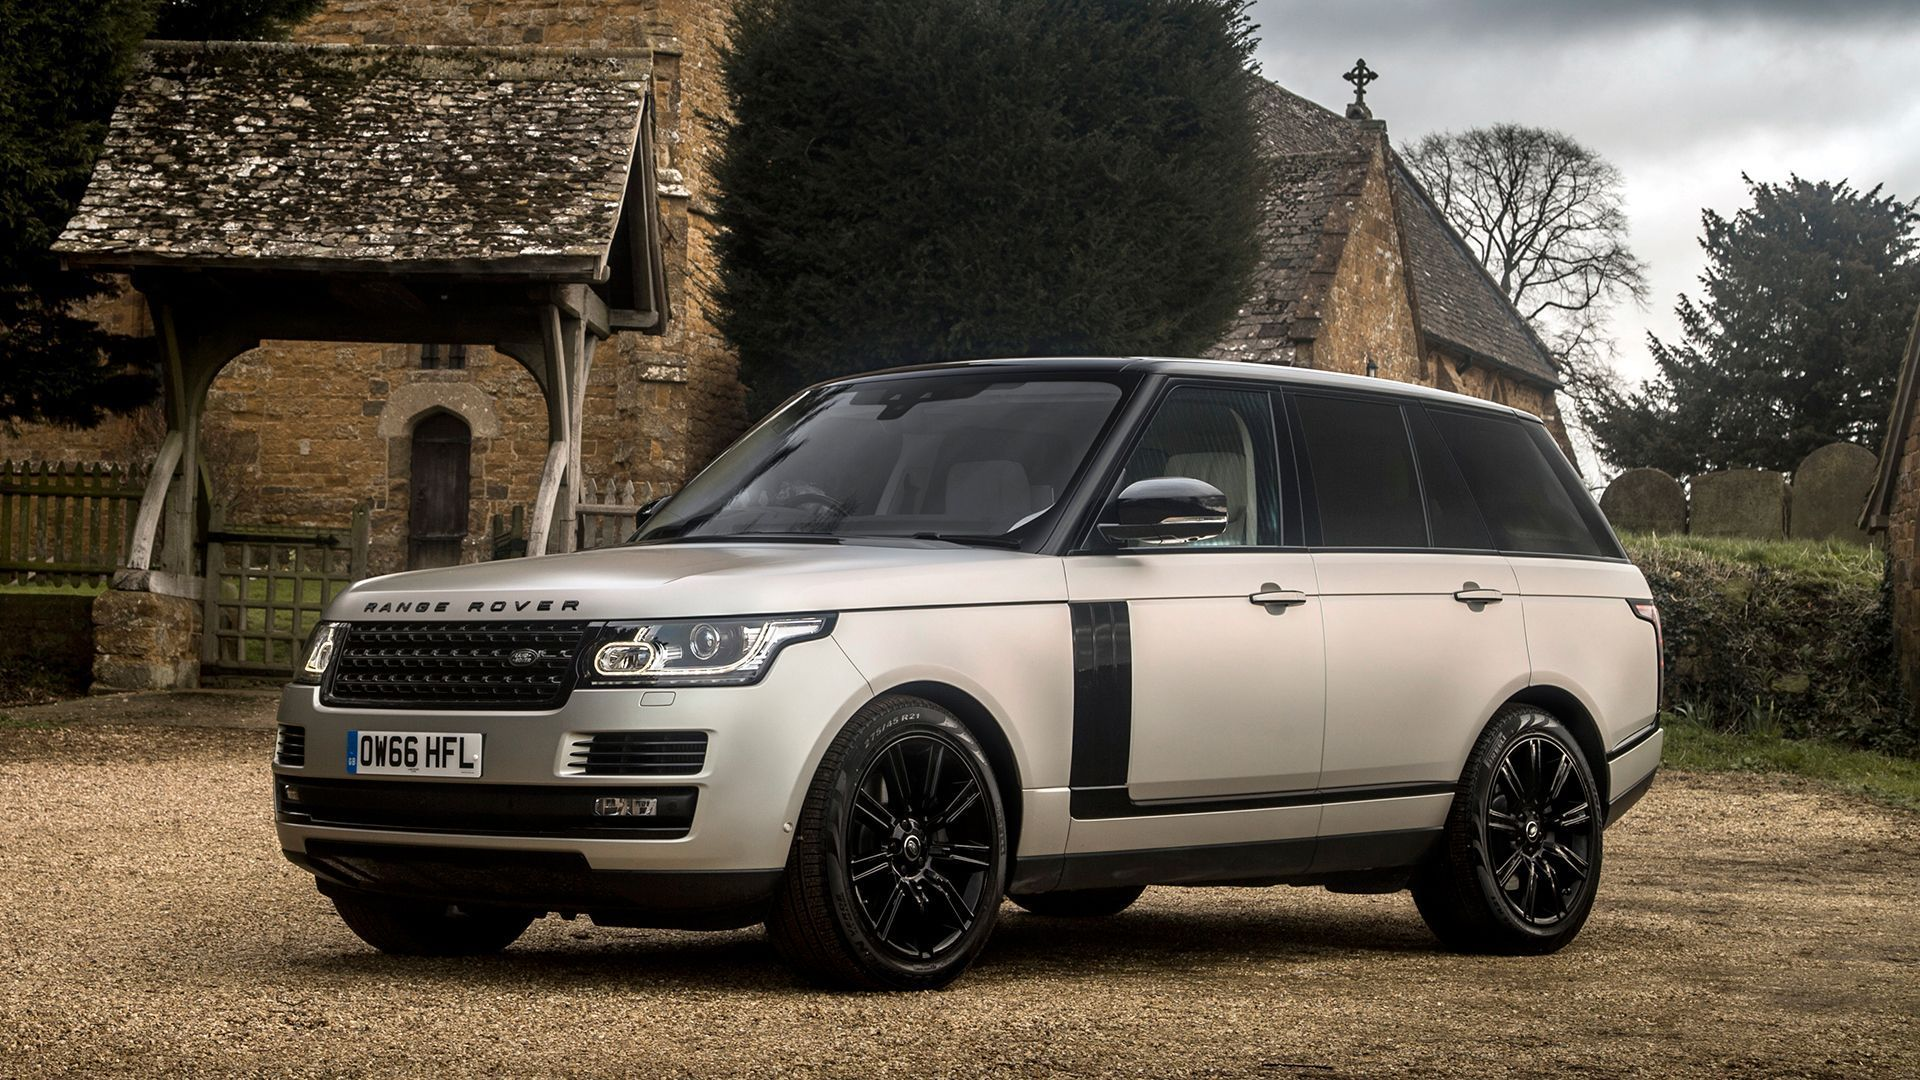 Land Rover Range Rover Autobiography Used Cars For Sale Autotrader Uk In 2021 Range Rover Car Range Rover Land Rover